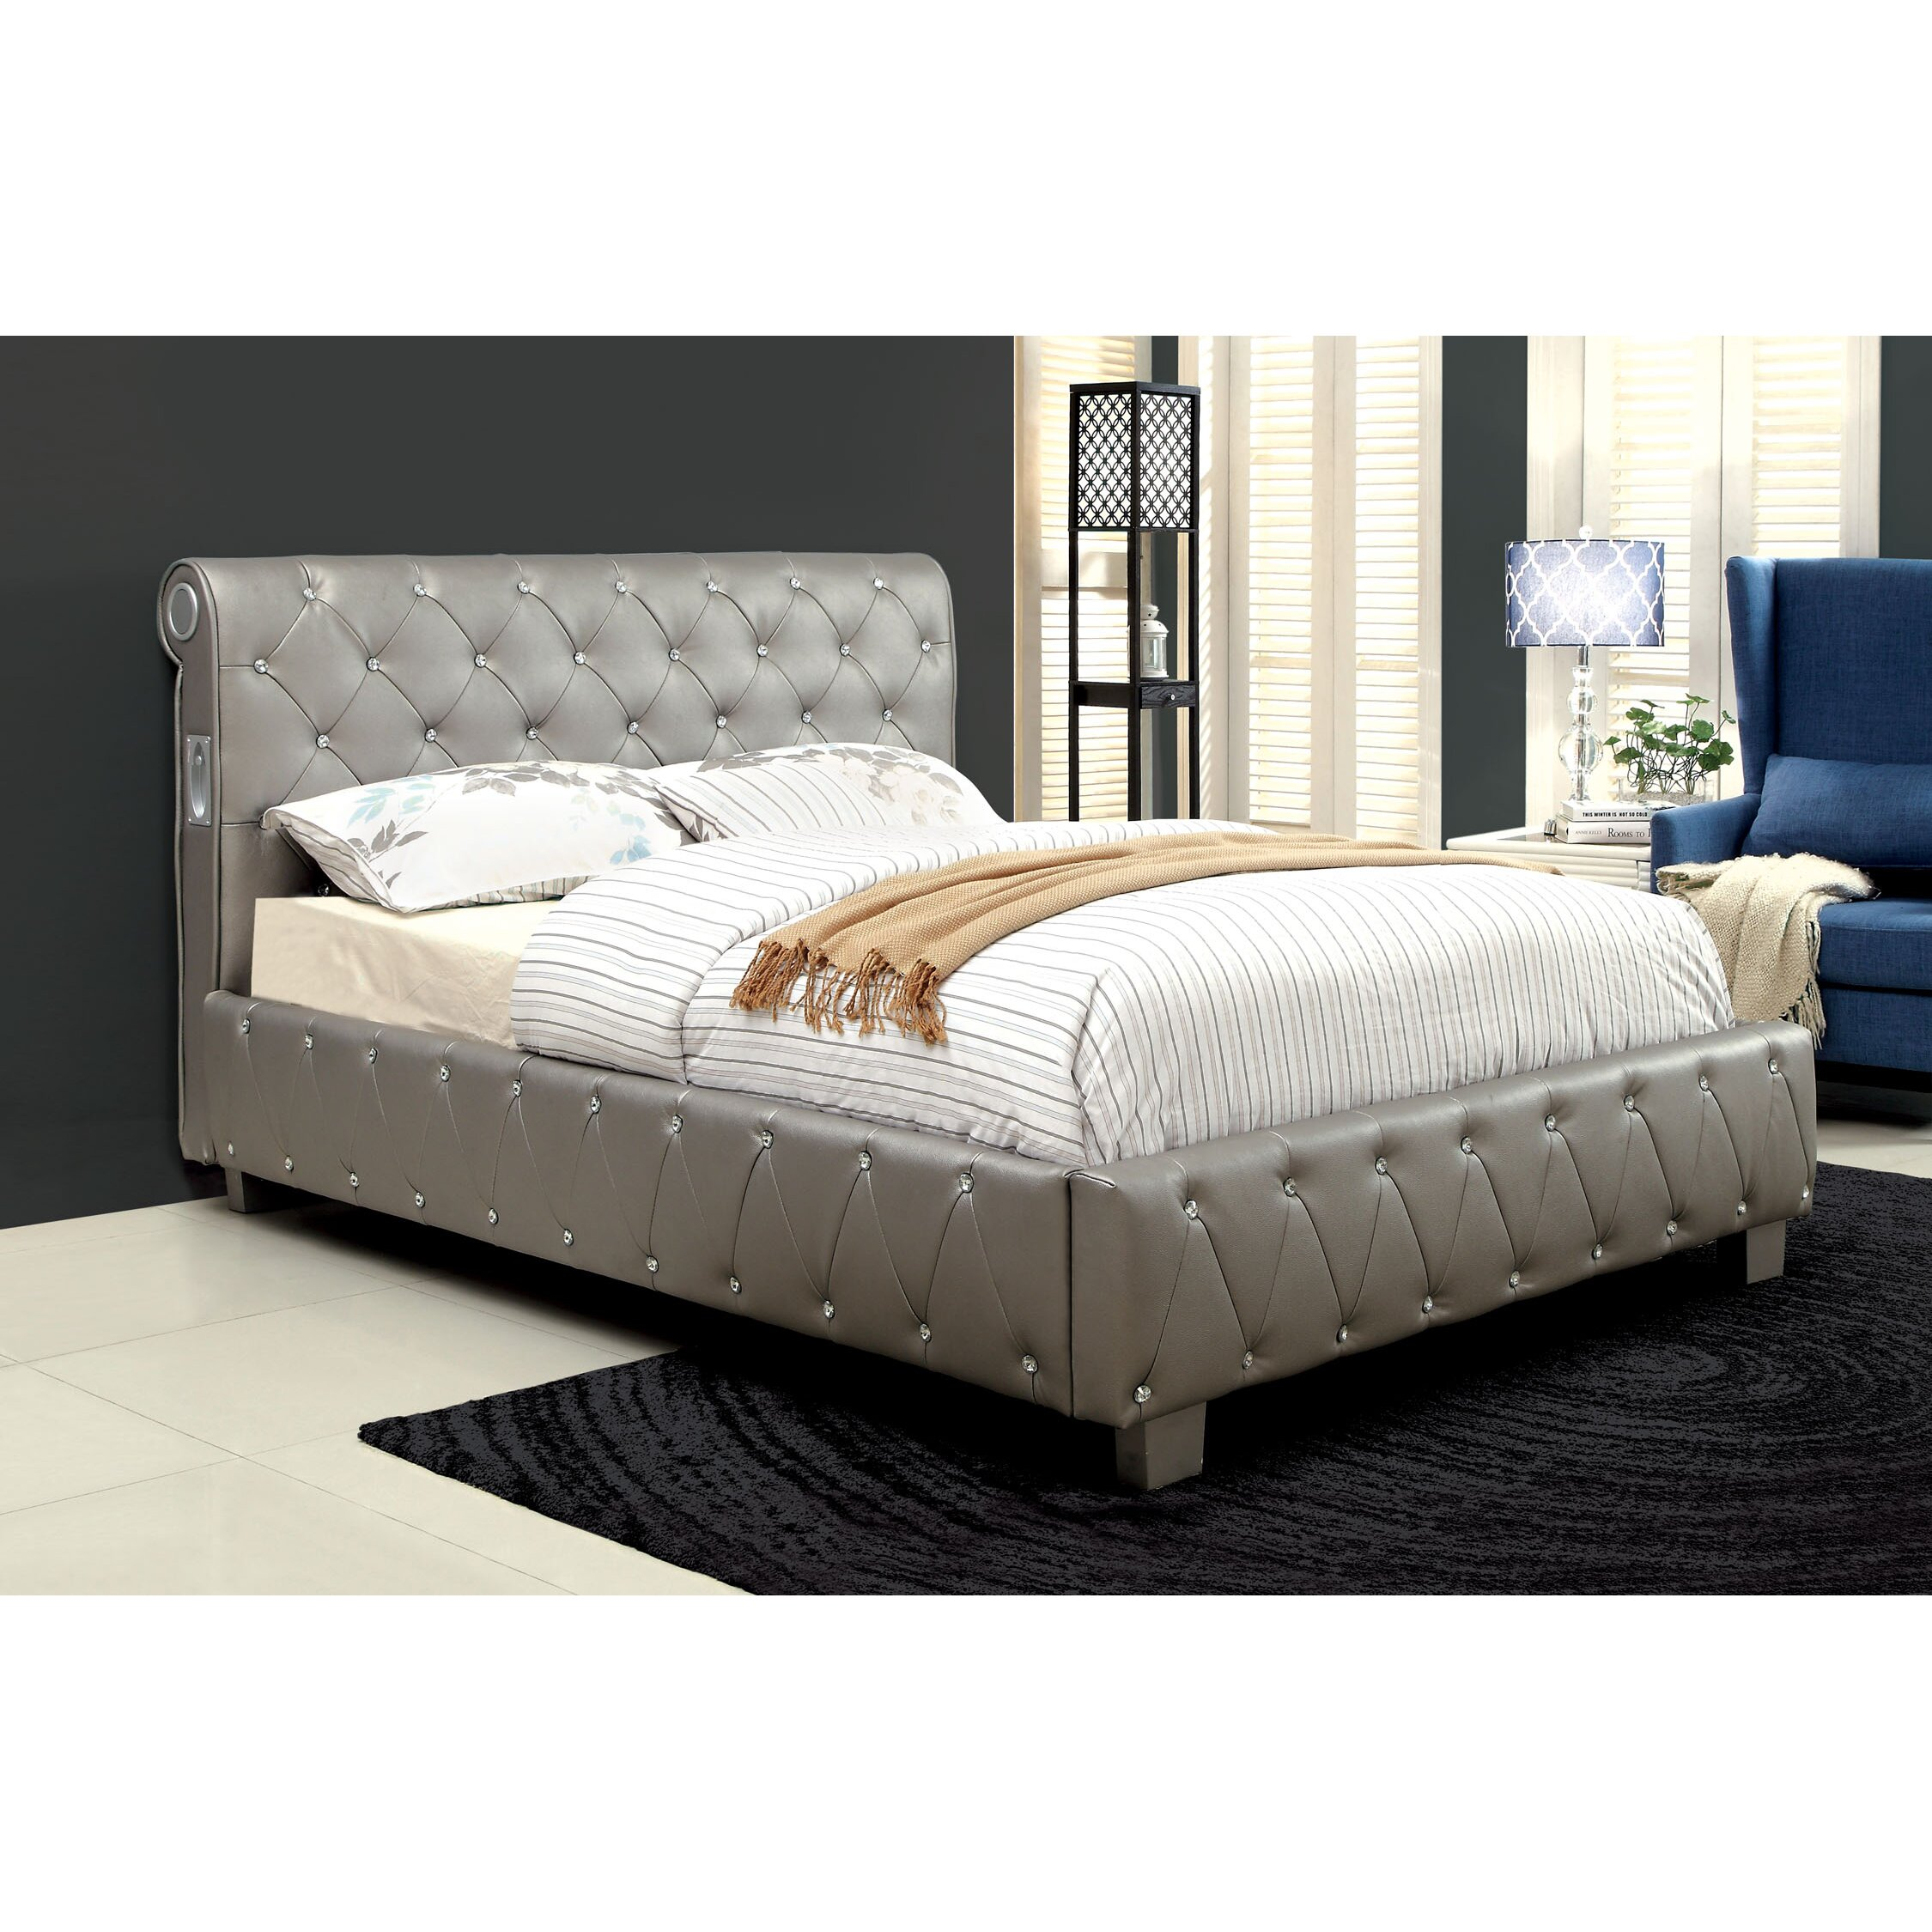 Hokku Designs Extravaganza Upholstered Sleigh Bed